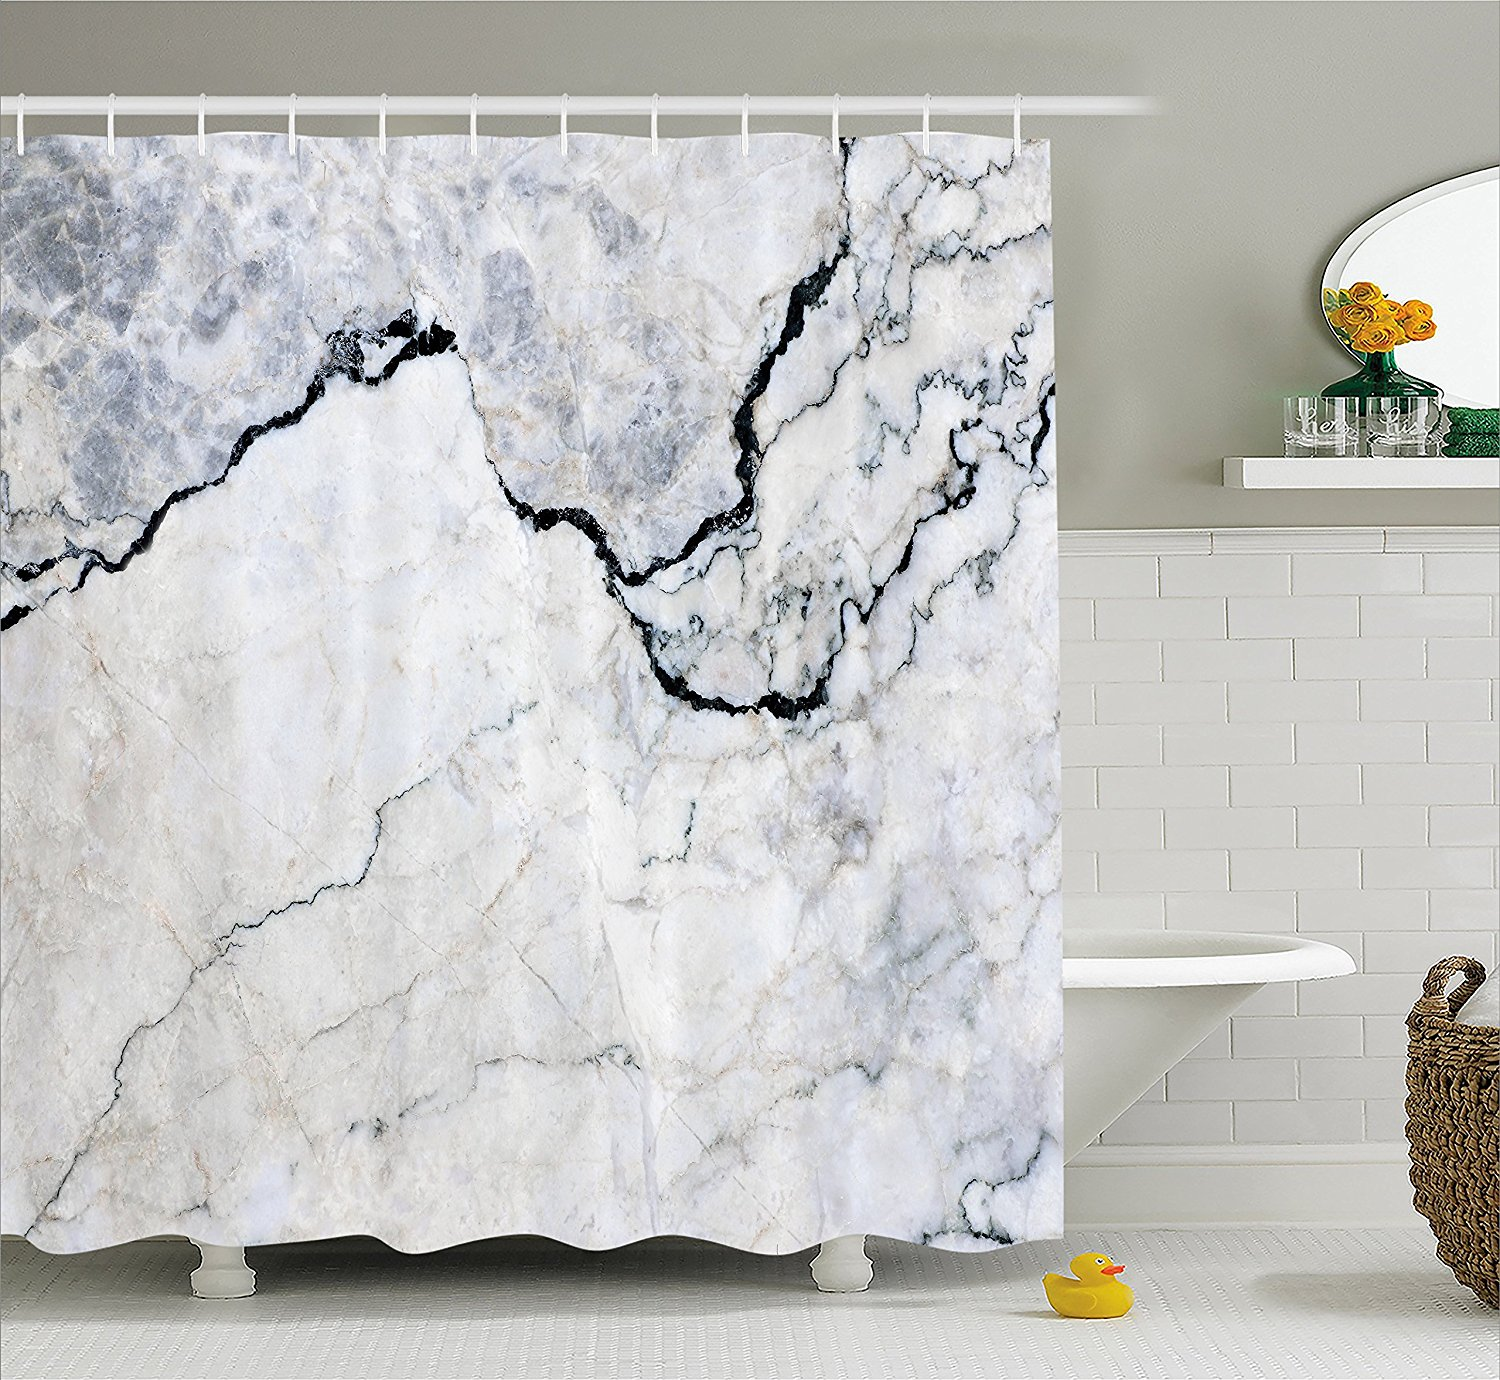 Fine bathroom accessories - Marble Textured Smooth Details Cracked Dimension Stone Smooth Elegance Image Fabric Bathroom Decor Set With Hooks